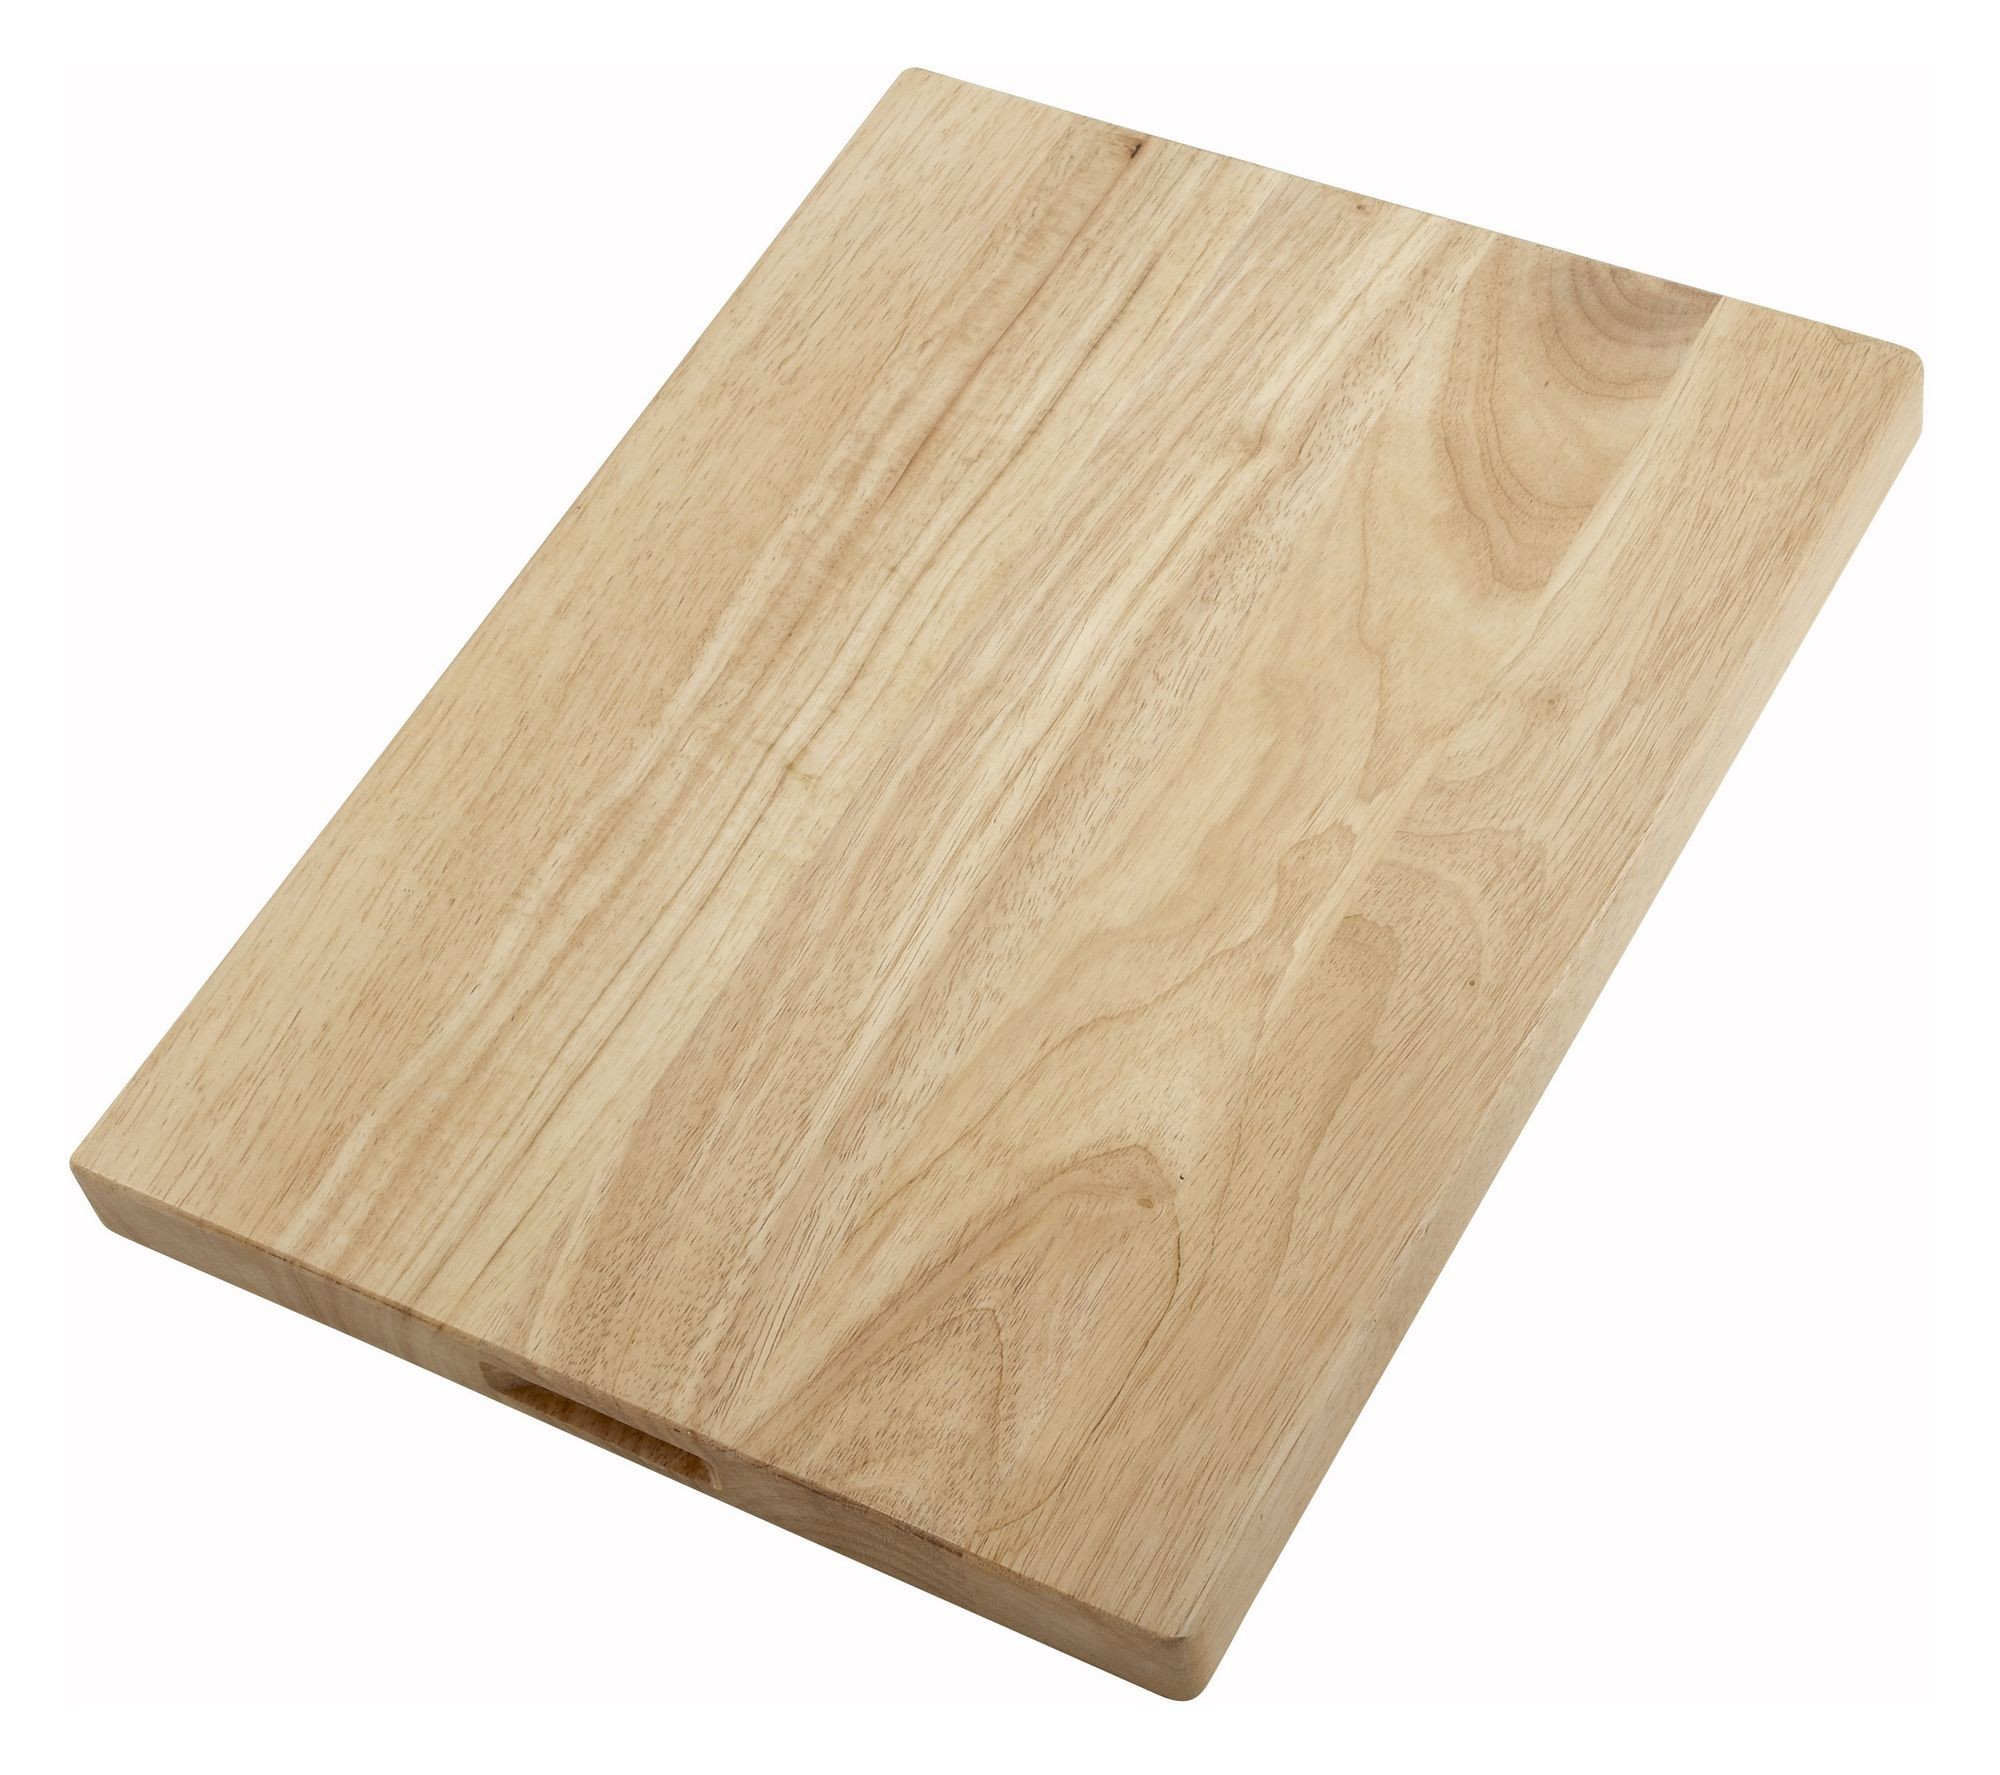 Wood Cutting Board - 18 X 30 X 1-3/4 Thick